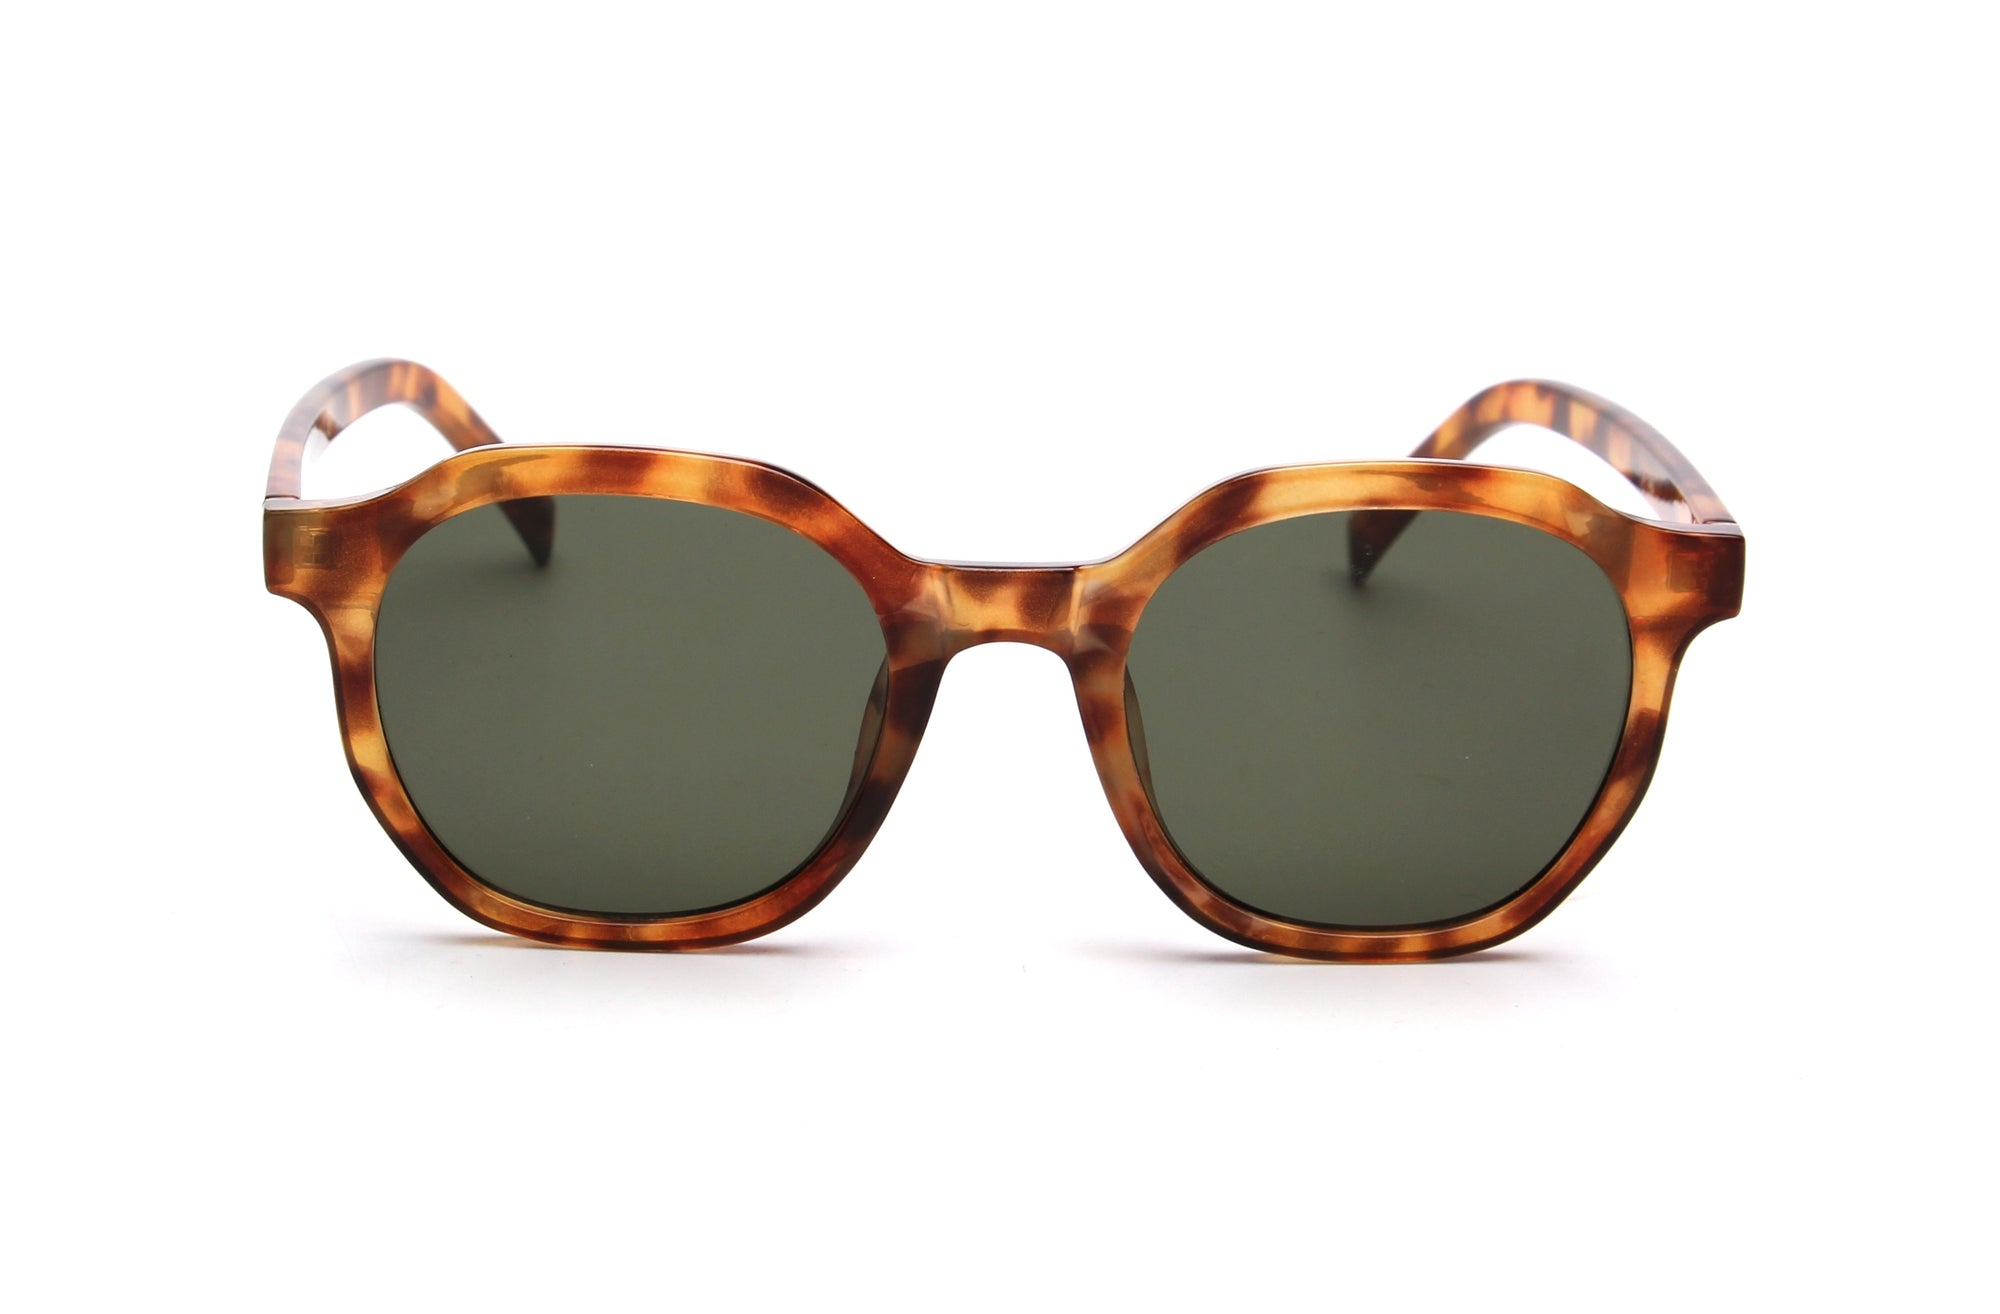 S1139 - Classic Retro Vintage Round Unisex Fashion Sunglasses - Iris Fashion Inc.